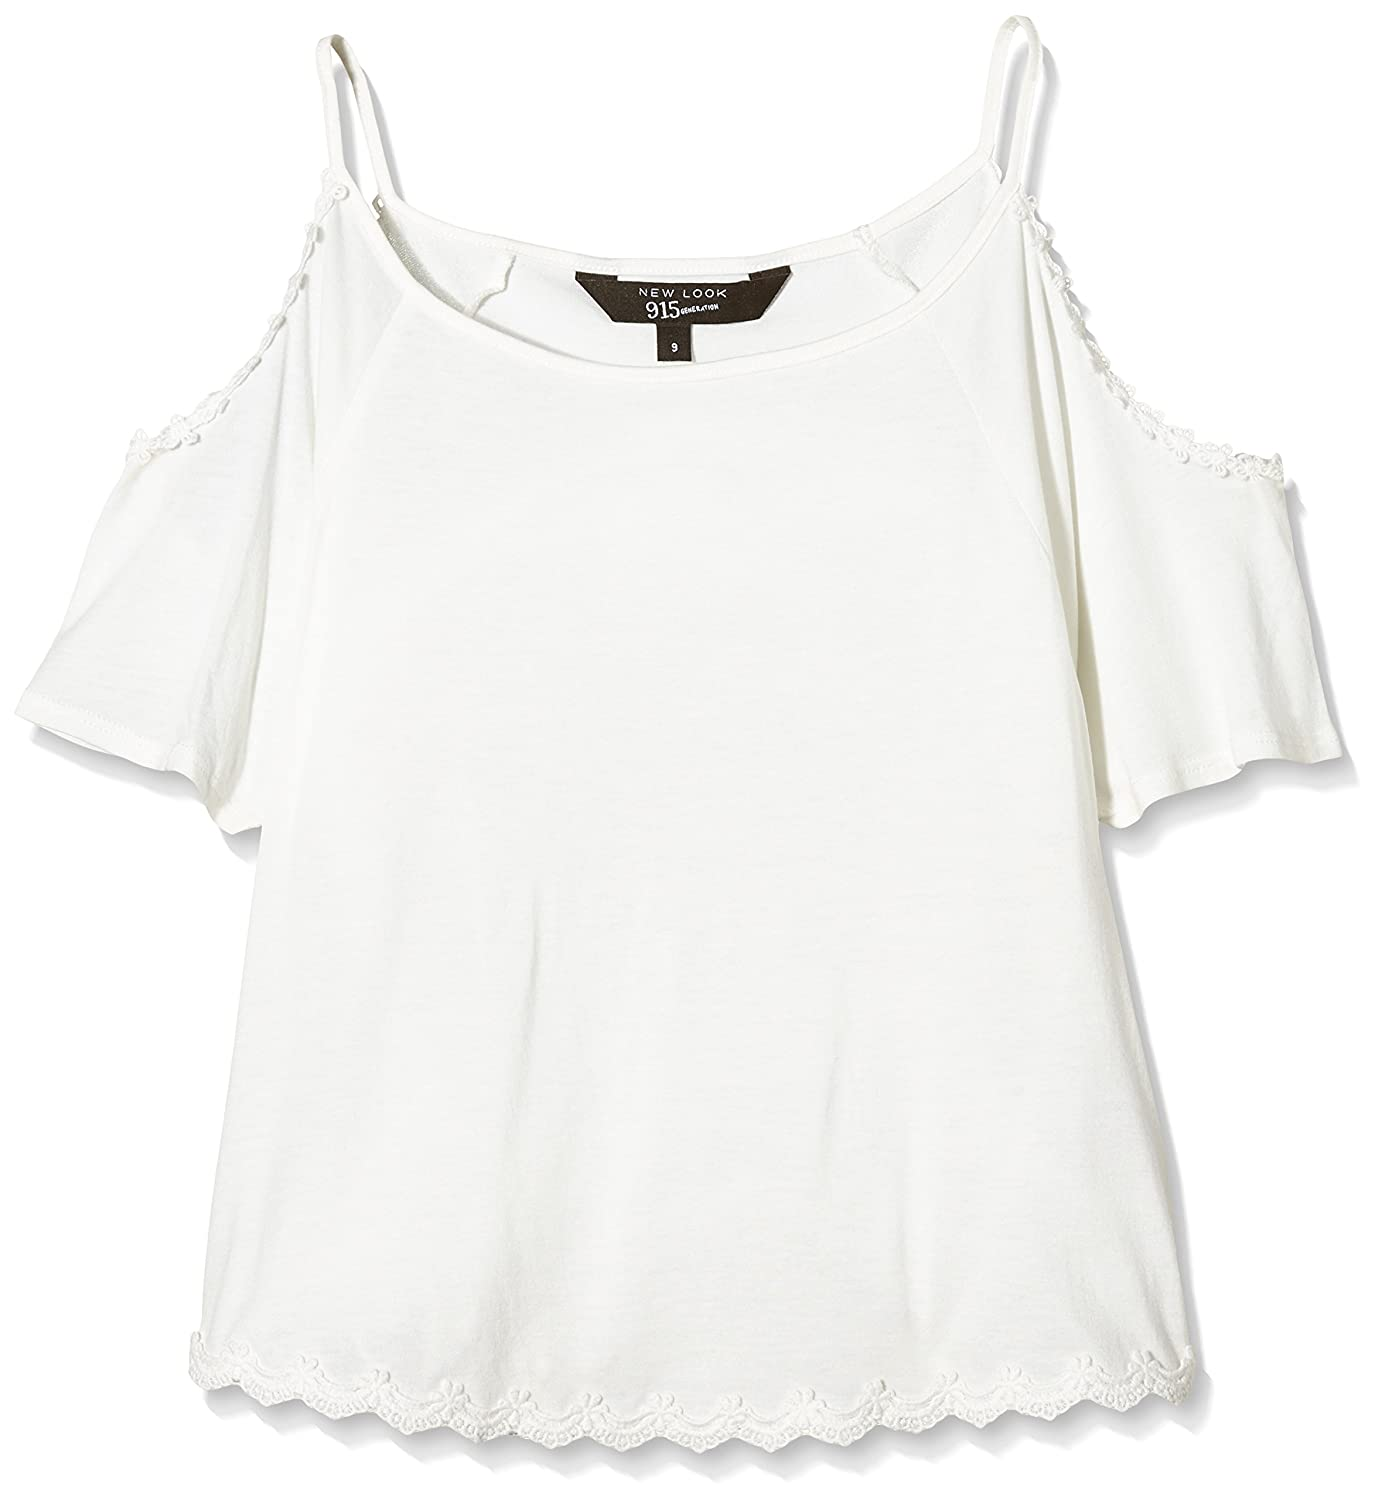 82b4273d7b1 New Look 915 Girl's Crochet Trim Loose Cold Shoulder Top, Off-White (Cream  Patterned), 9 Years: Amazon.co.uk: Clothing